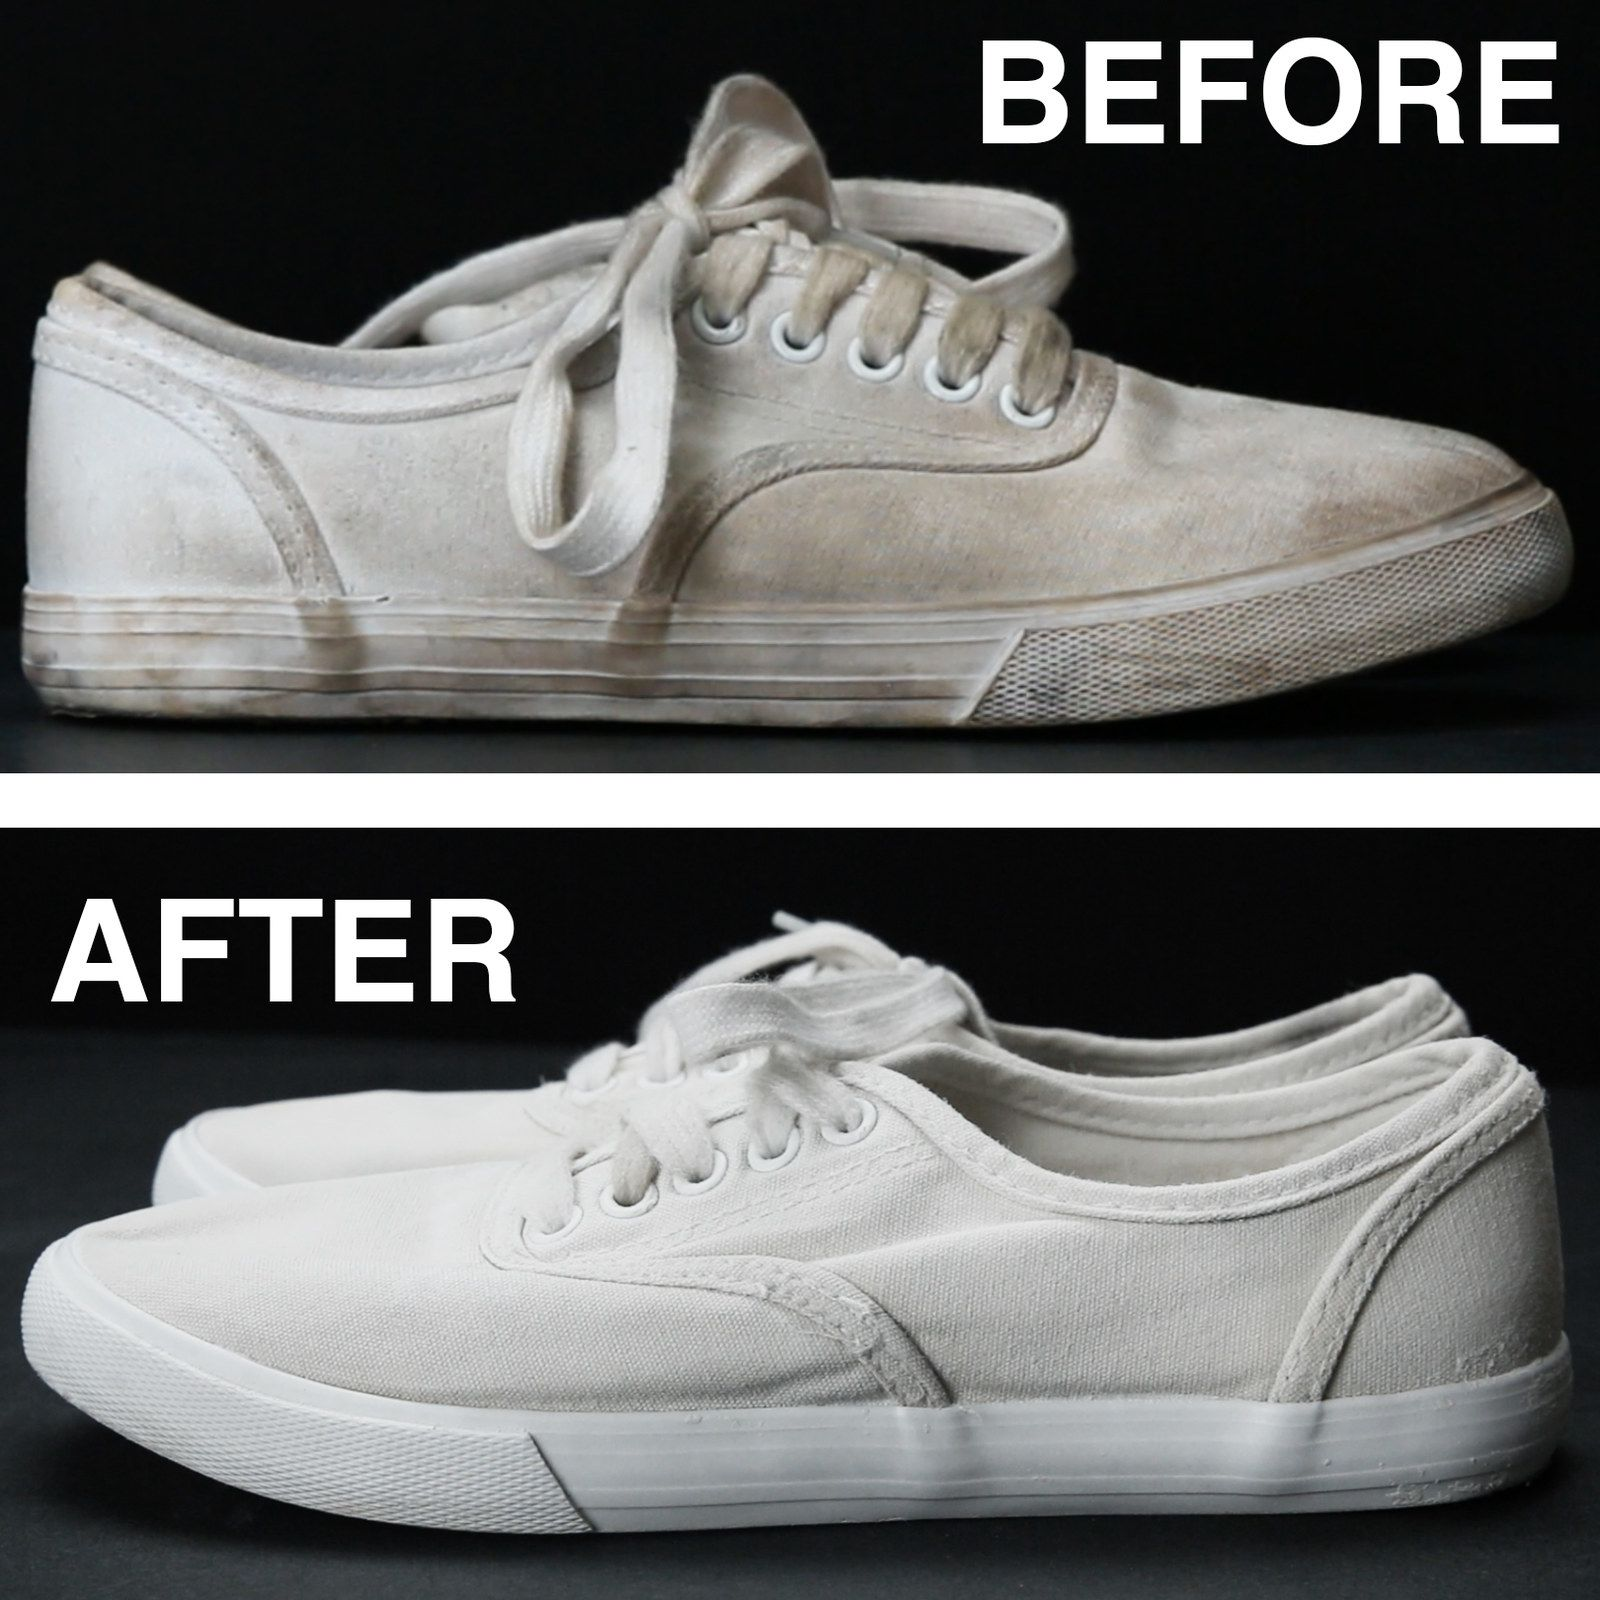 How To Clean White Sneakers (And Keep Them Sparkling